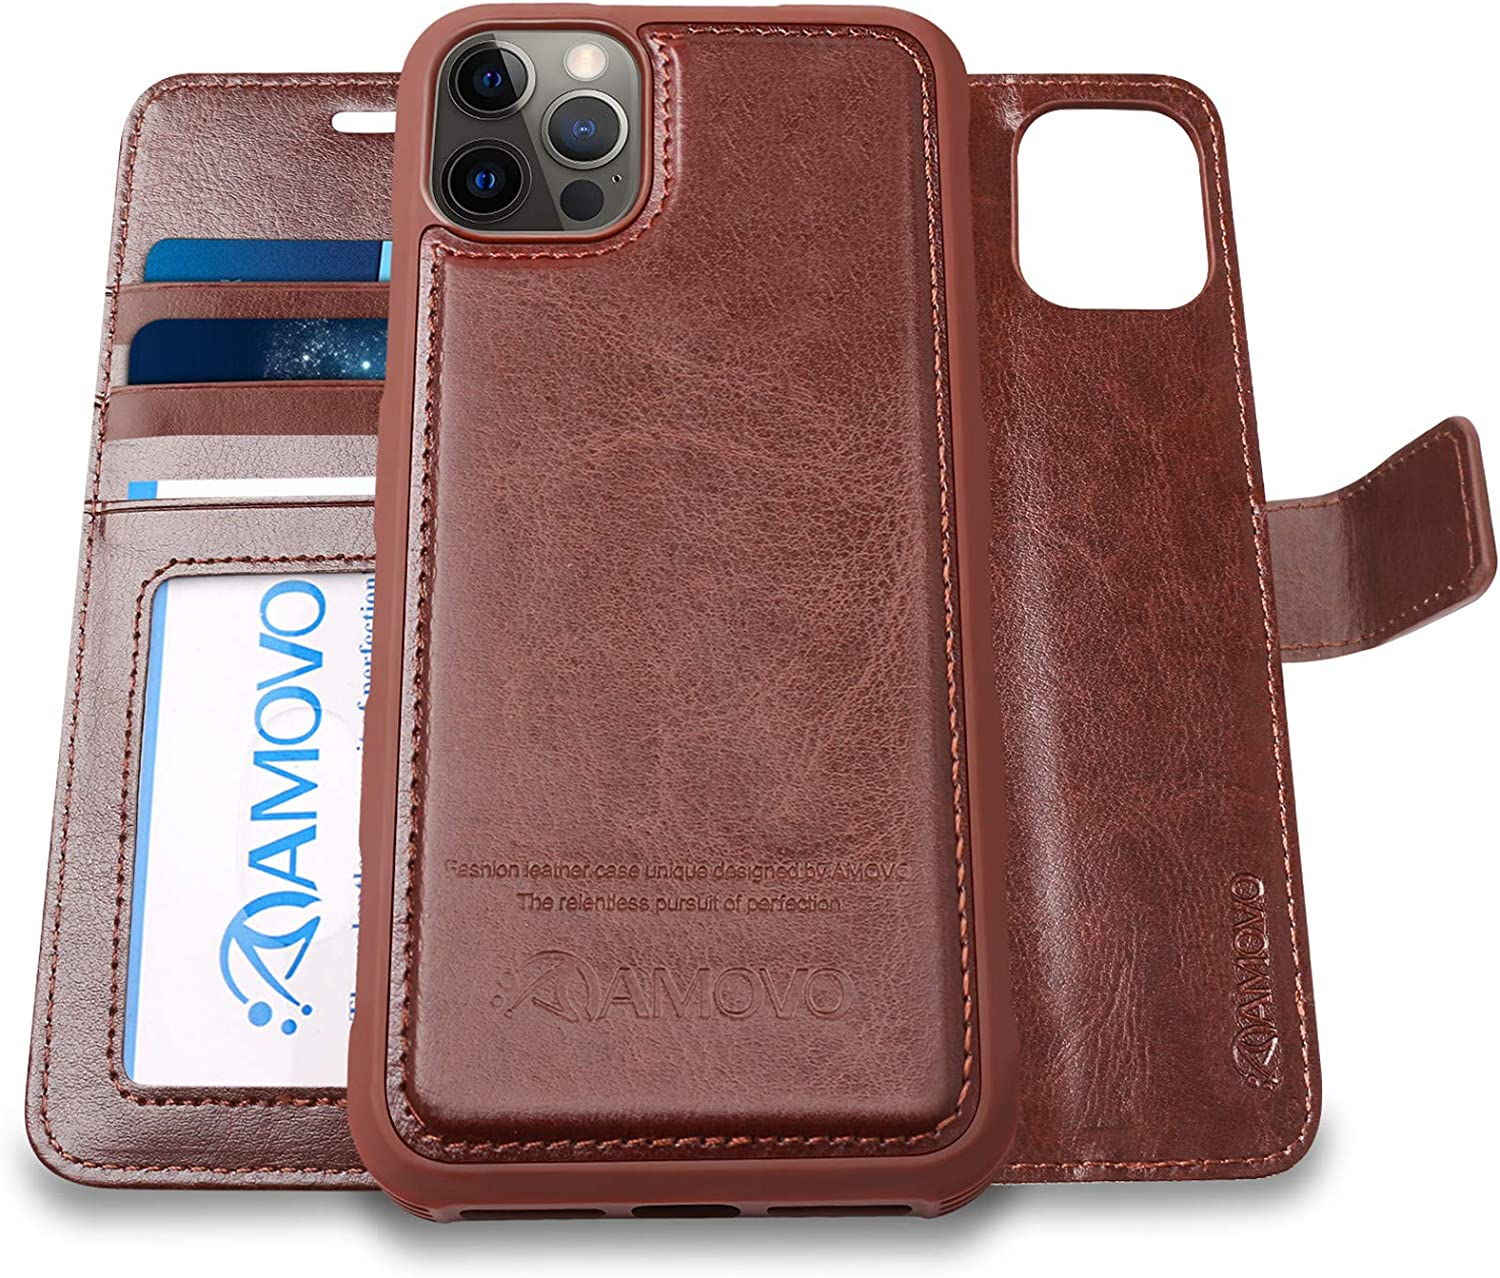 AMOVO Compatible with iPhone 12 Pro Max Case Wallet Detachable [2 in 1][Vegan Leather][Hand Strap][Card Slot][Stand Feature] Flip Folio Case Cover Compatible with iPhone 12 Pro Max (6.7'') (Brown)